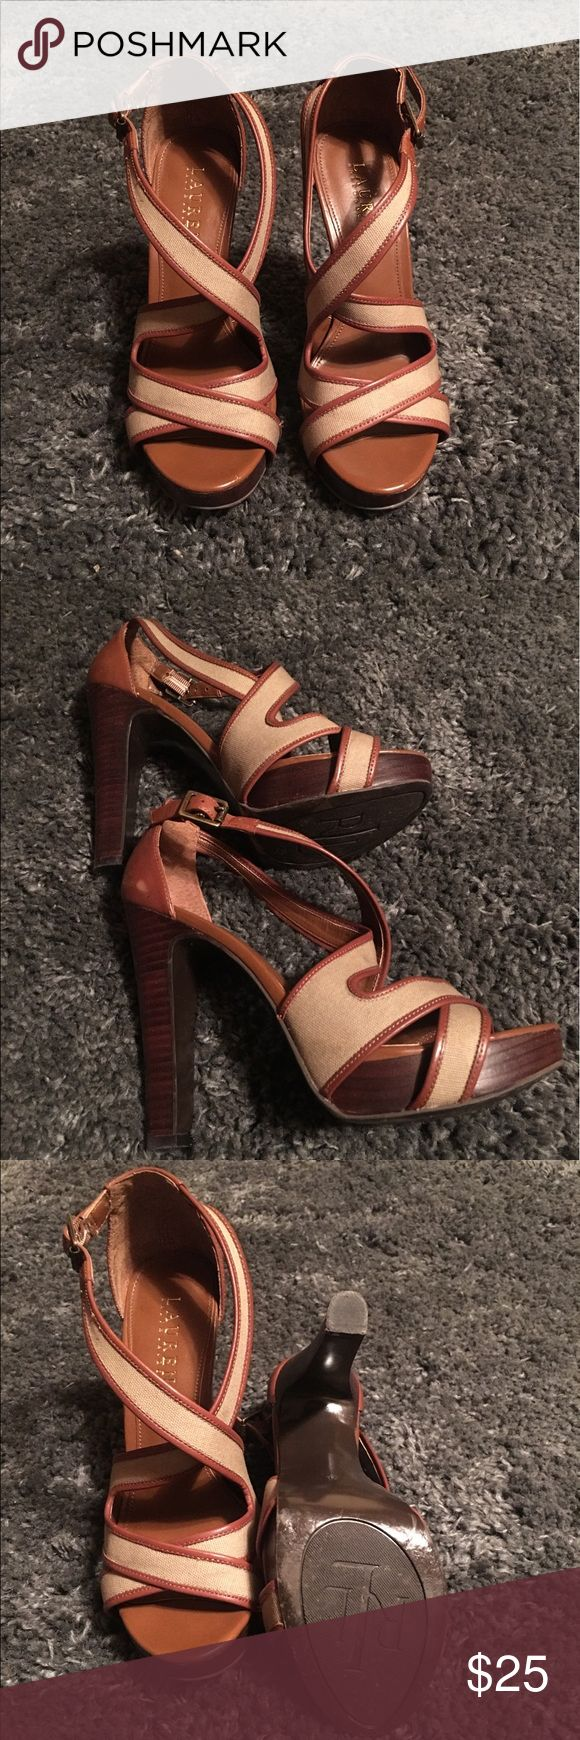 """Ralph Lauren Strapped Heels - Size 7B These beautiful Ralph Lauren heels sport a 4 1/2"""" heel with a 1"""" platform. The straps are made of tan canvas trimmed in brown leather. Ralph Lauren Shoes Heels"""